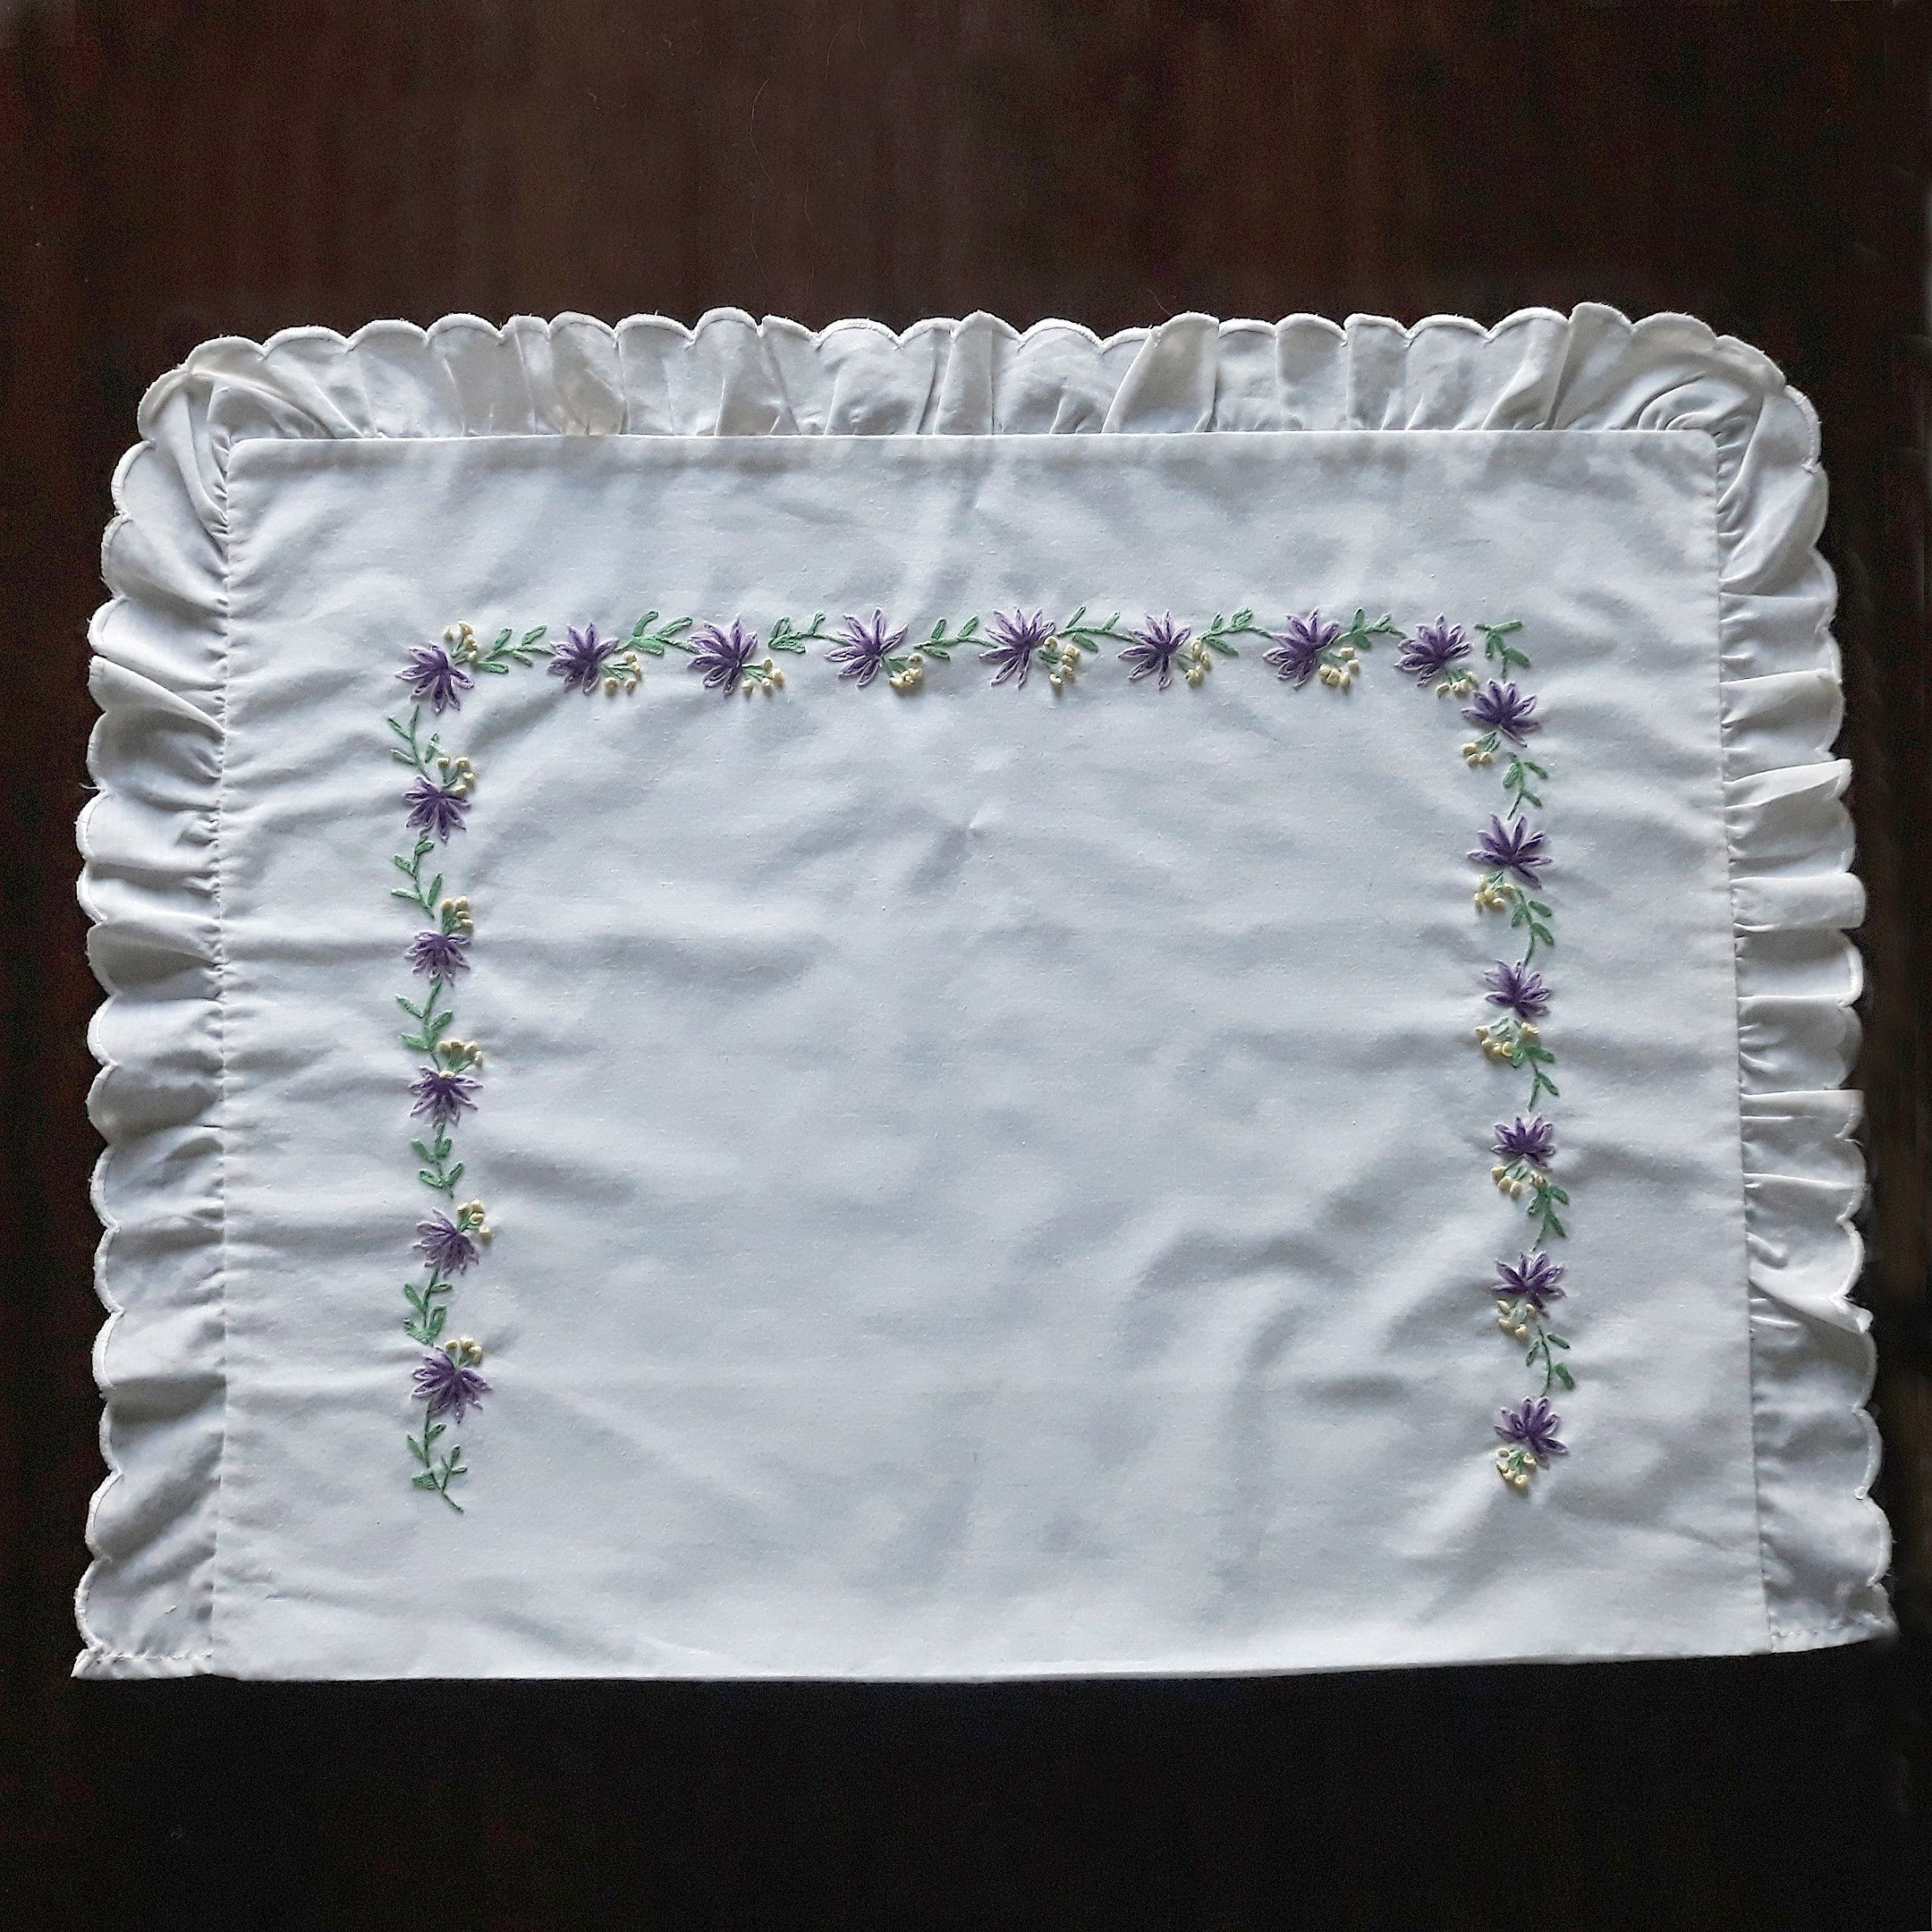 White embroidered pillowcase with violet flowers, Vintage cushion cover, European pillowsham, Narrow floral pattern, Unique gift idea